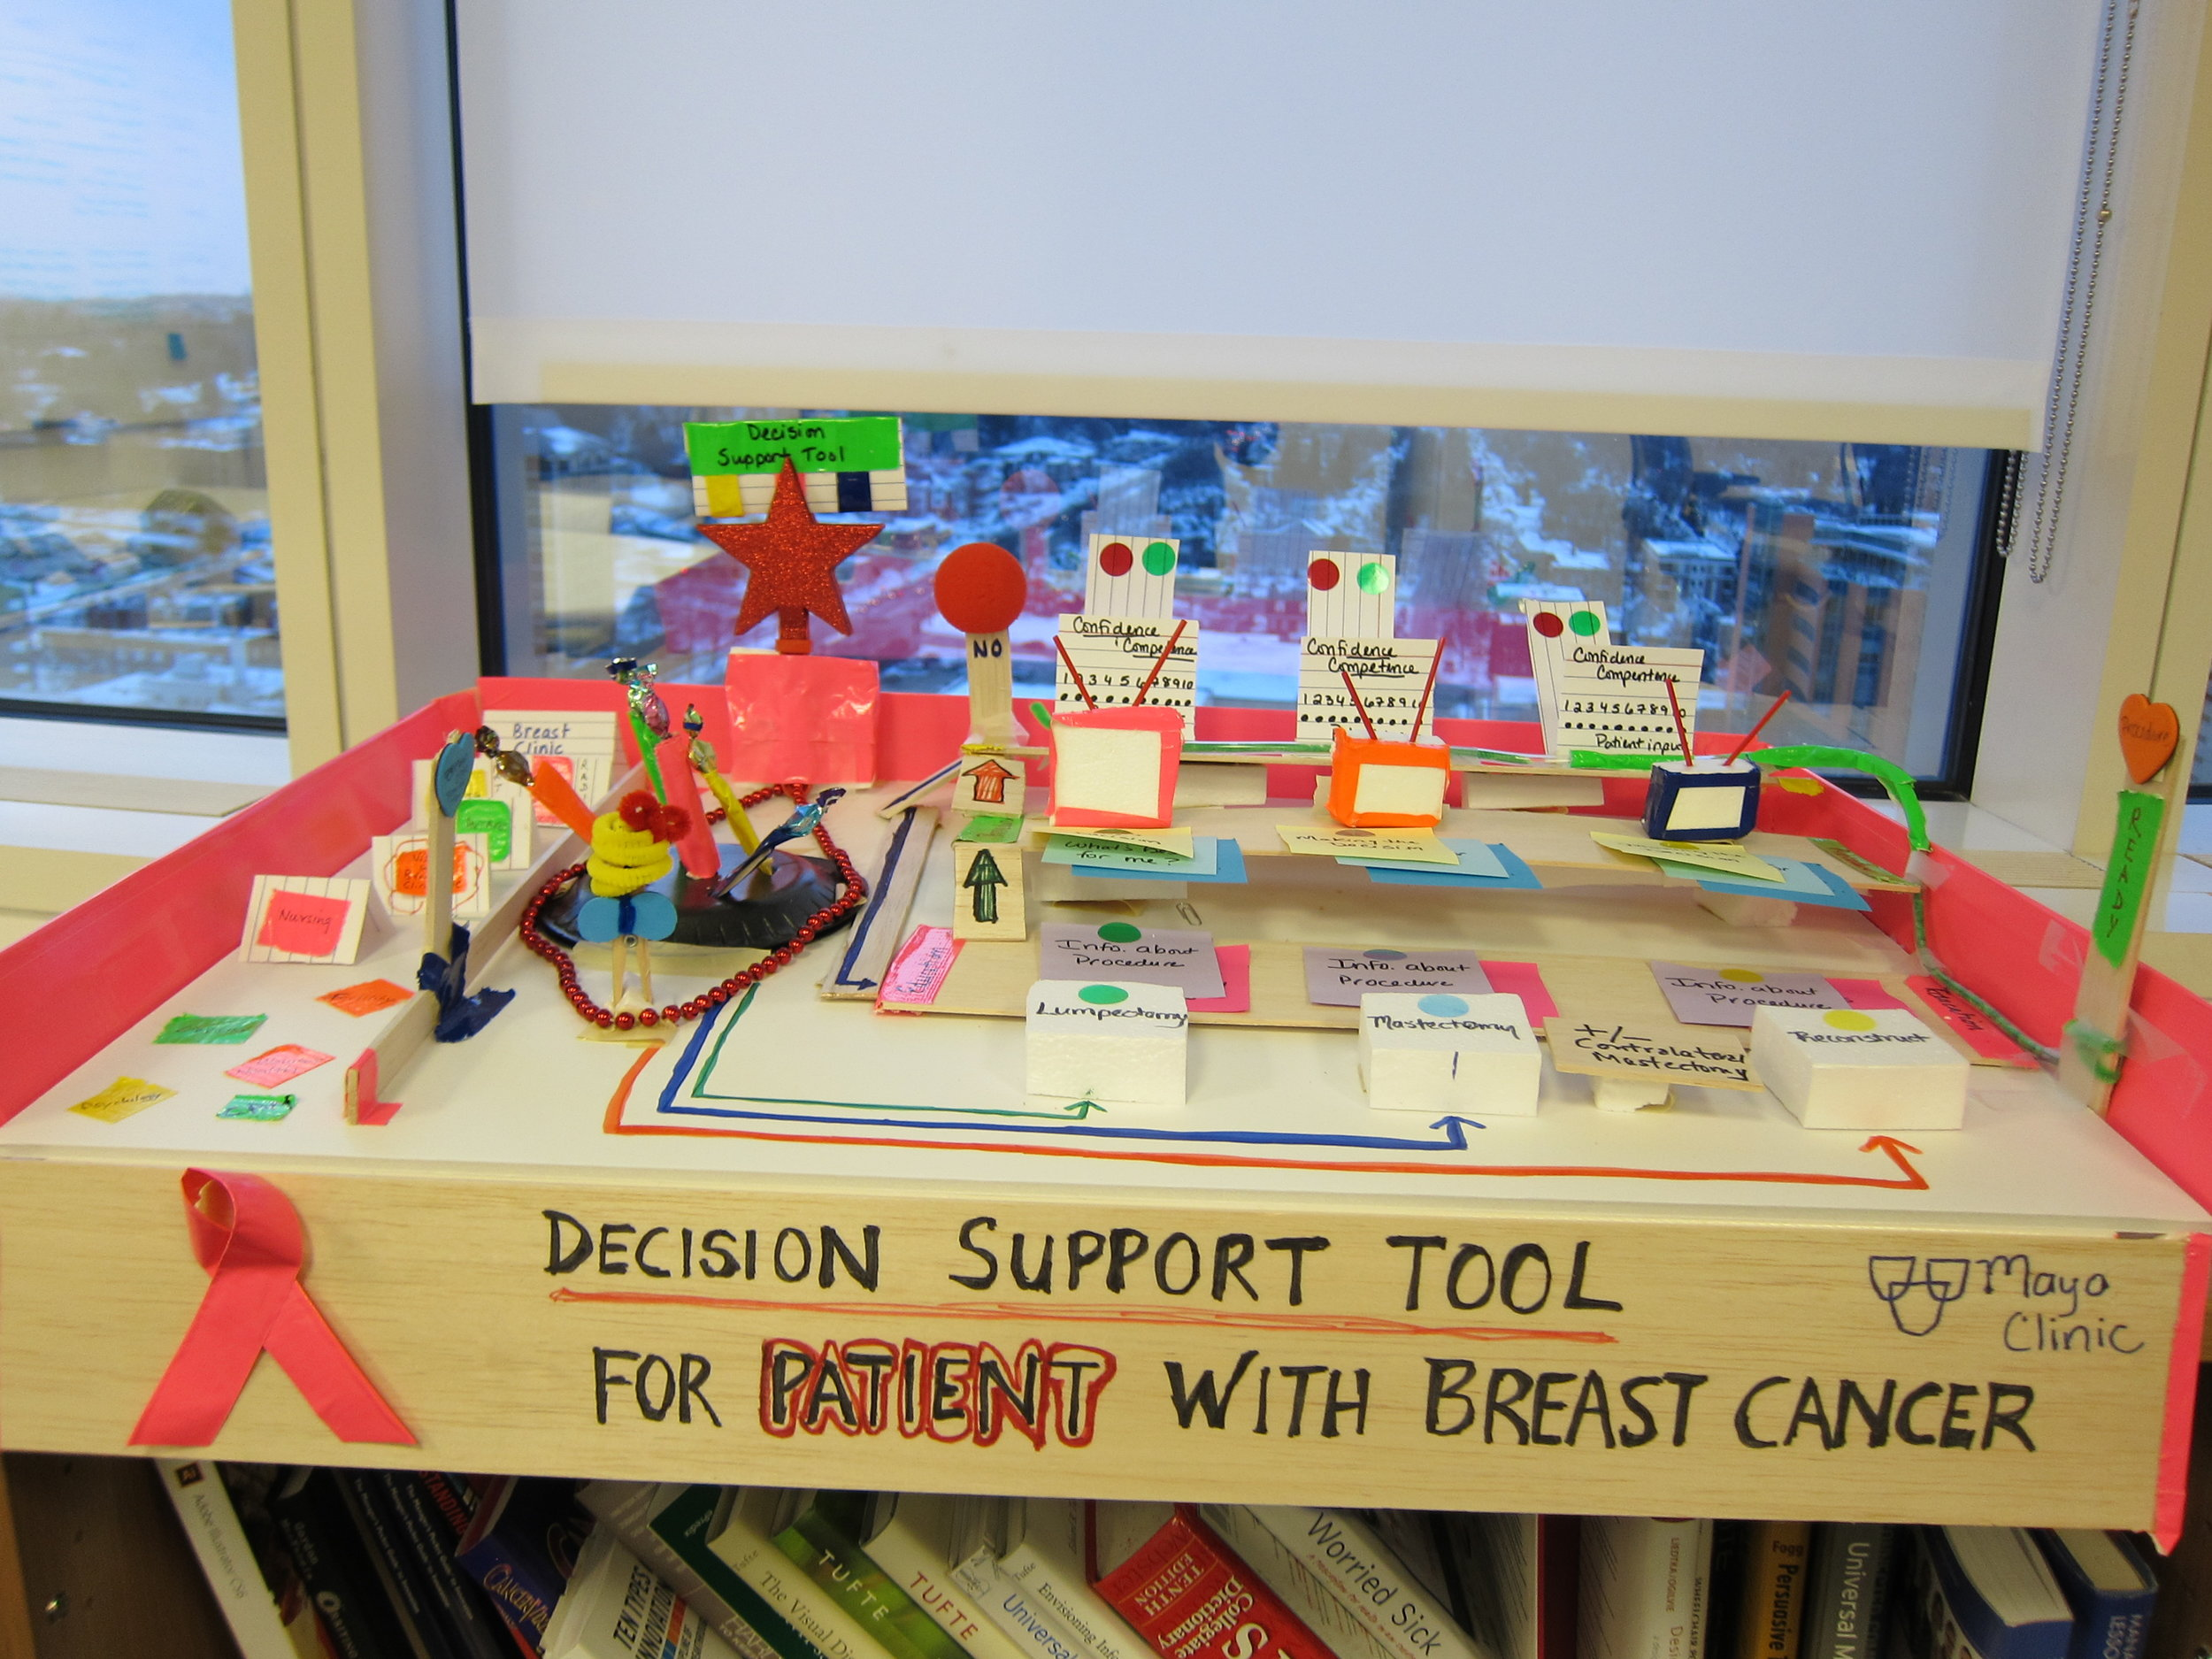 Prototype created by Breast Cancer clinical team during a design bootcamp weekend